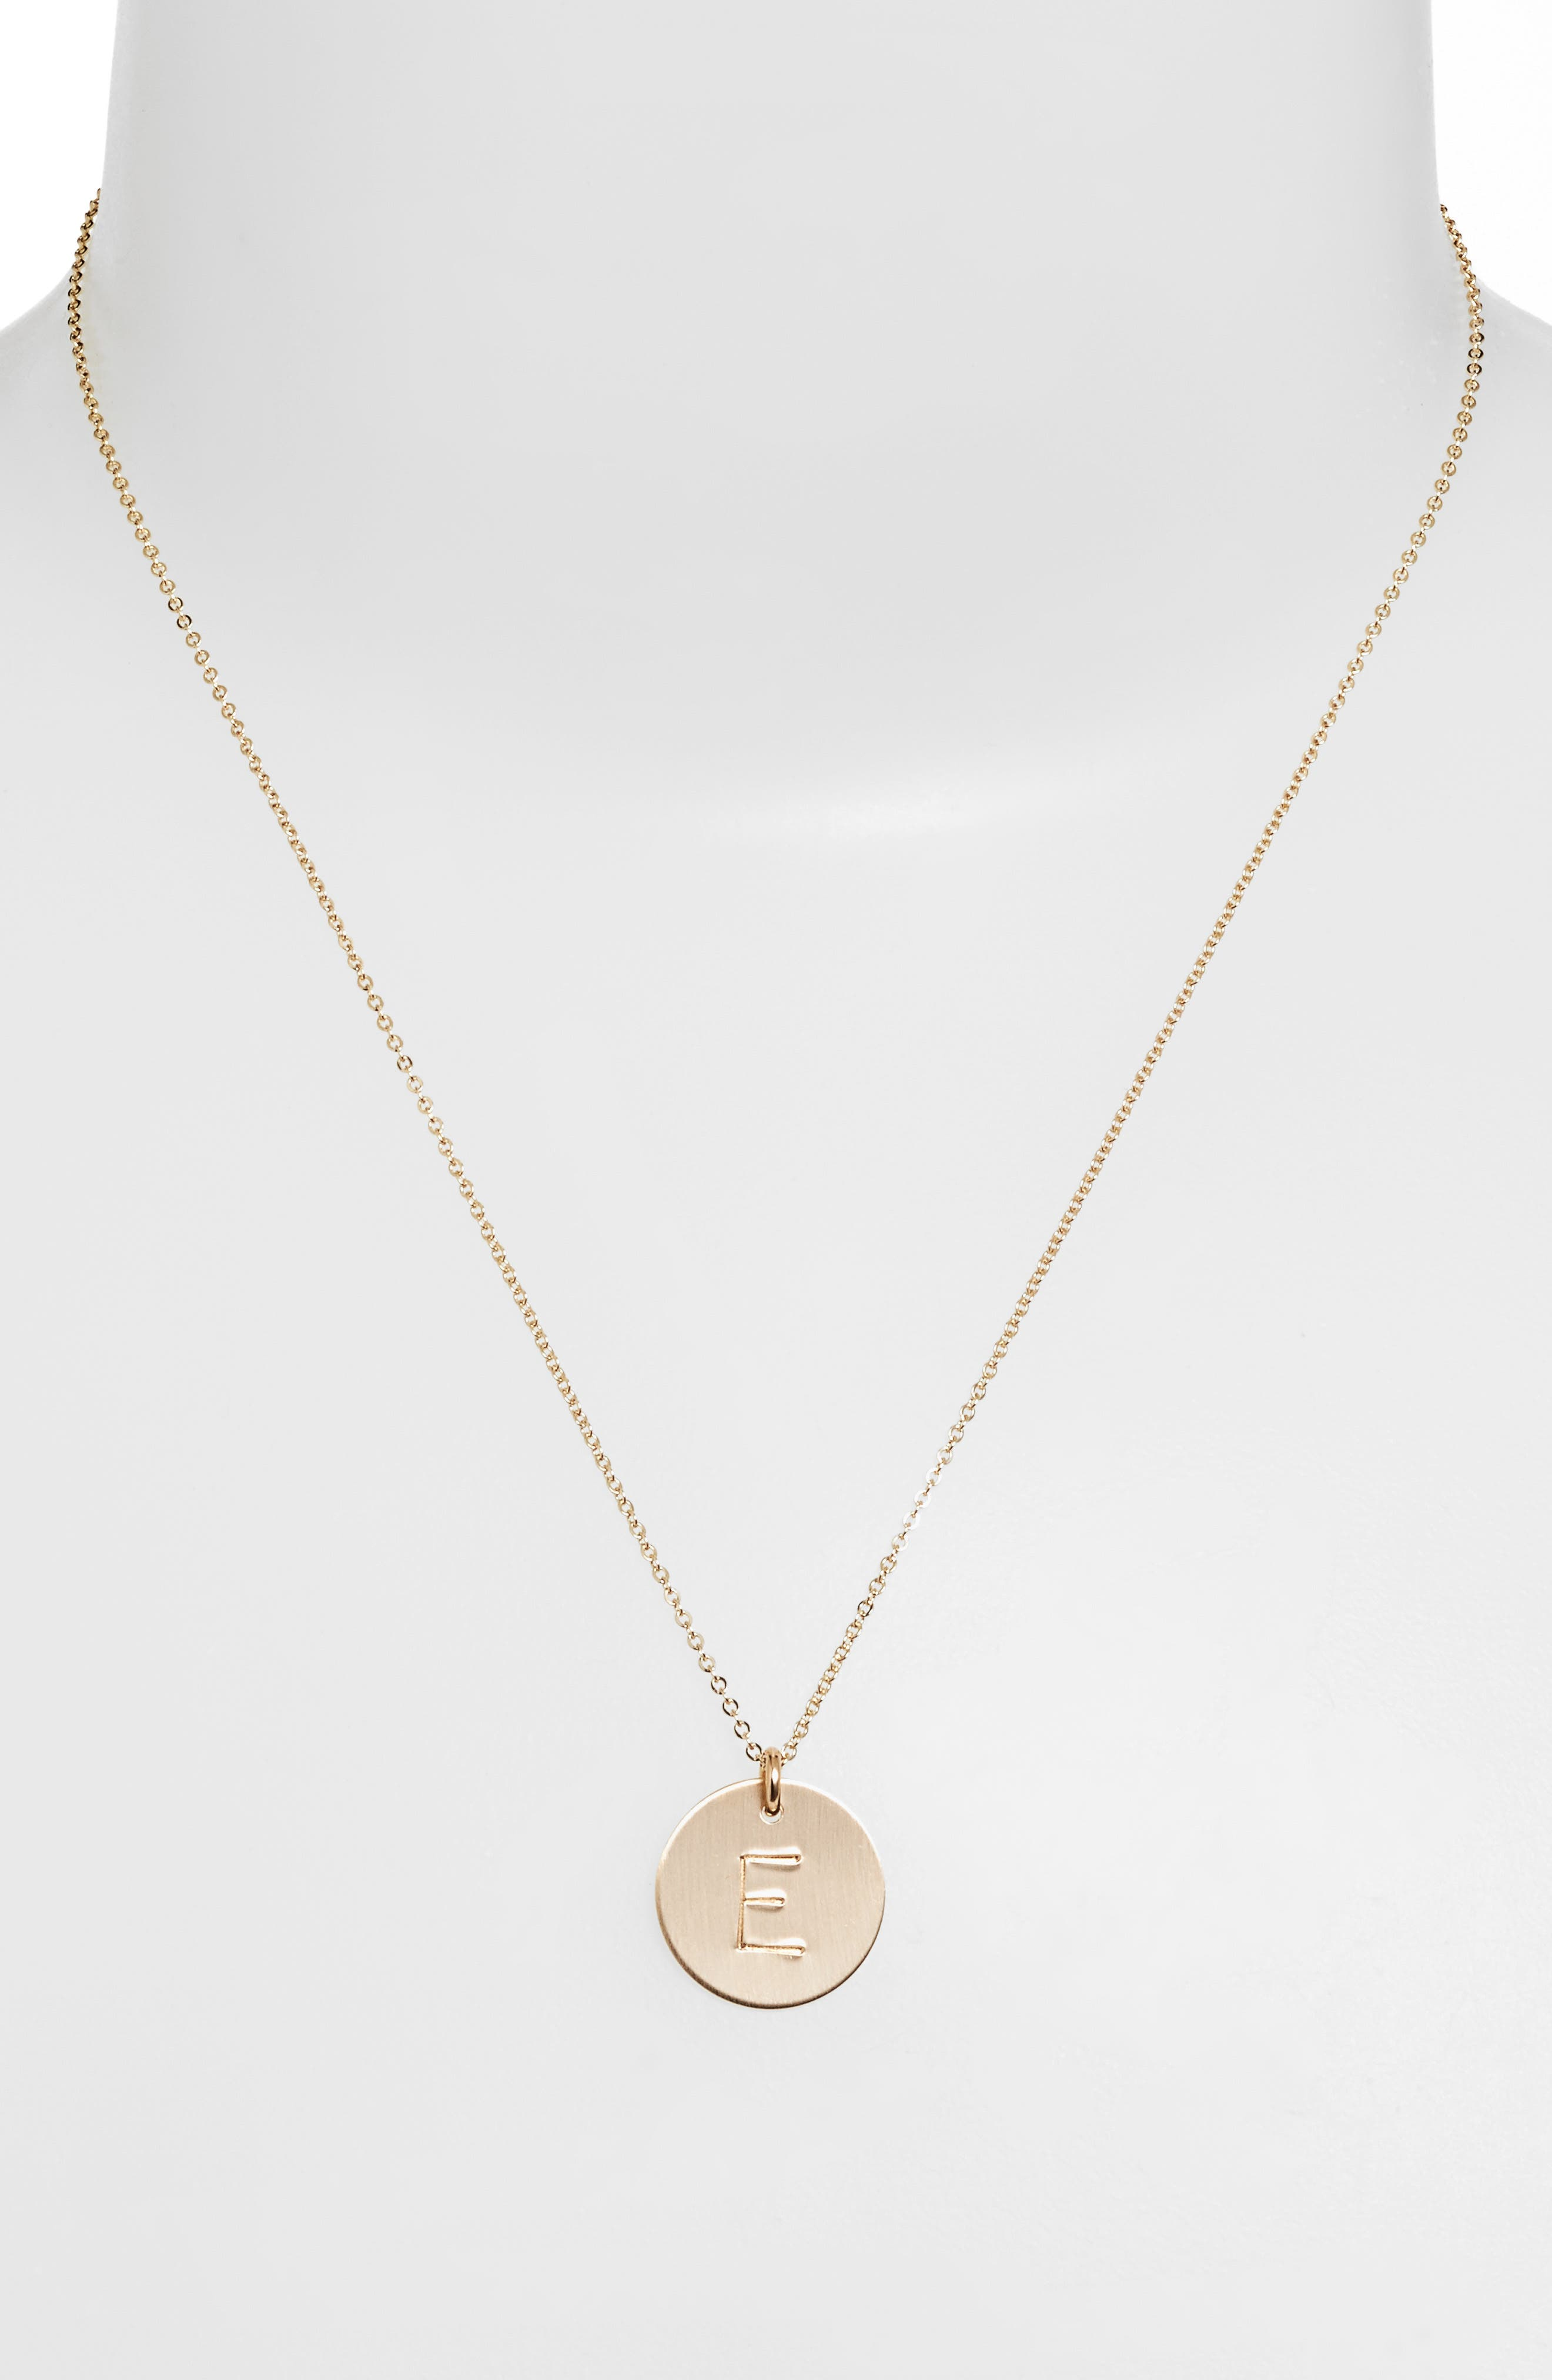 14k-Gold Fill Initial Disc Necklace,                             Alternate thumbnail 2, color,                             14K GOLD FILL E